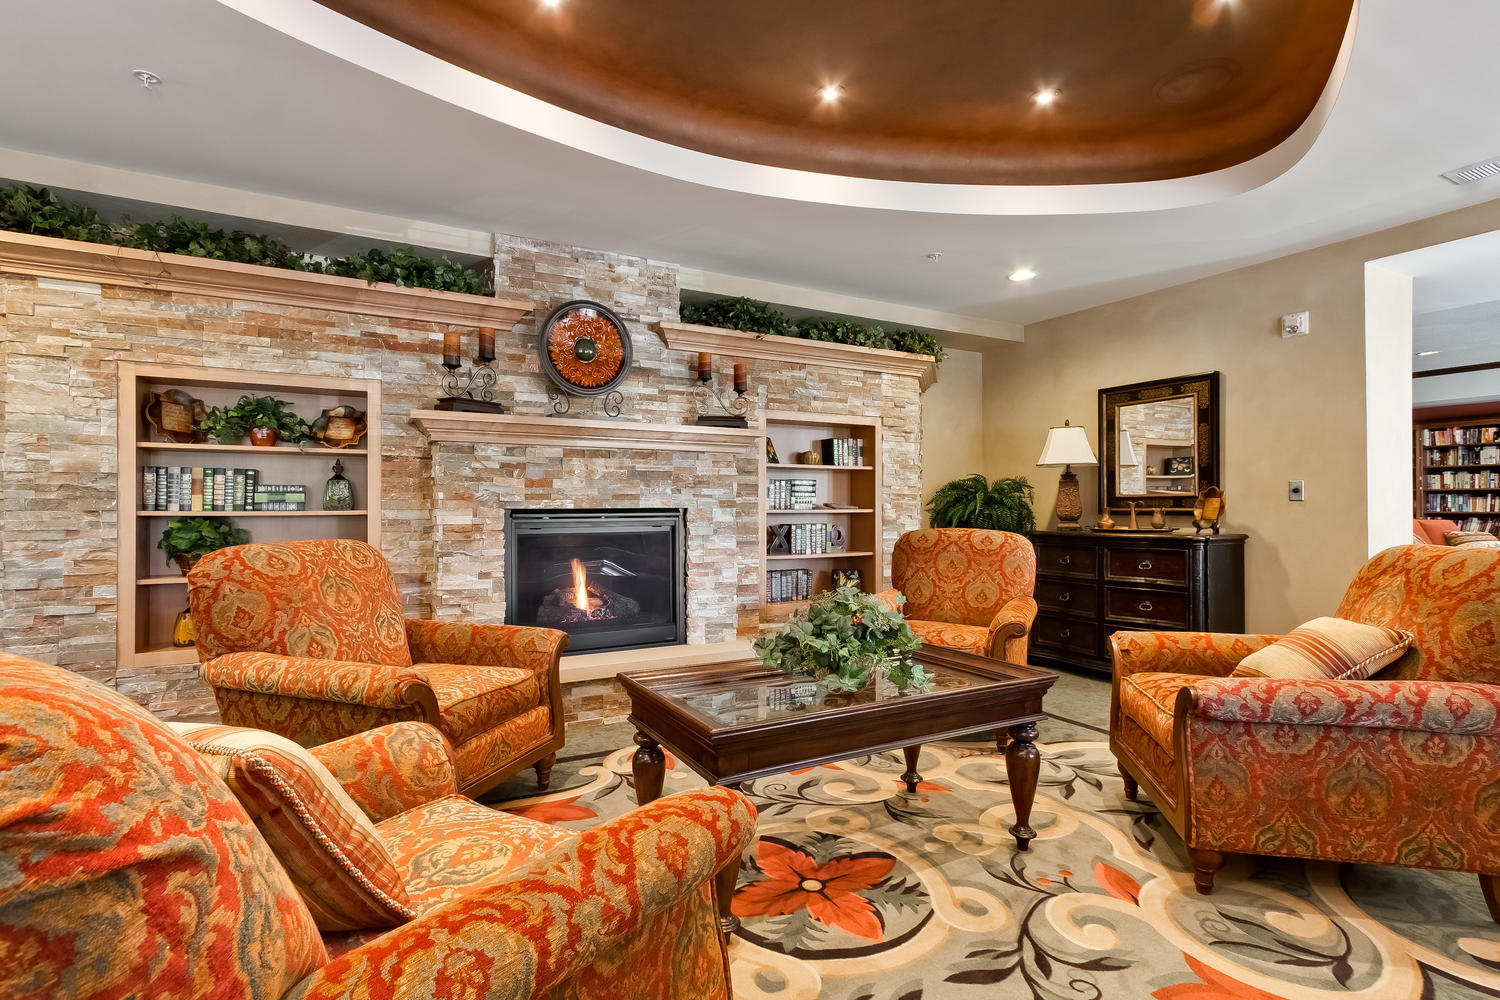 Every Applewood Pointe has a warm and welcoming front lobby with soft chairs and a gas fireplace.